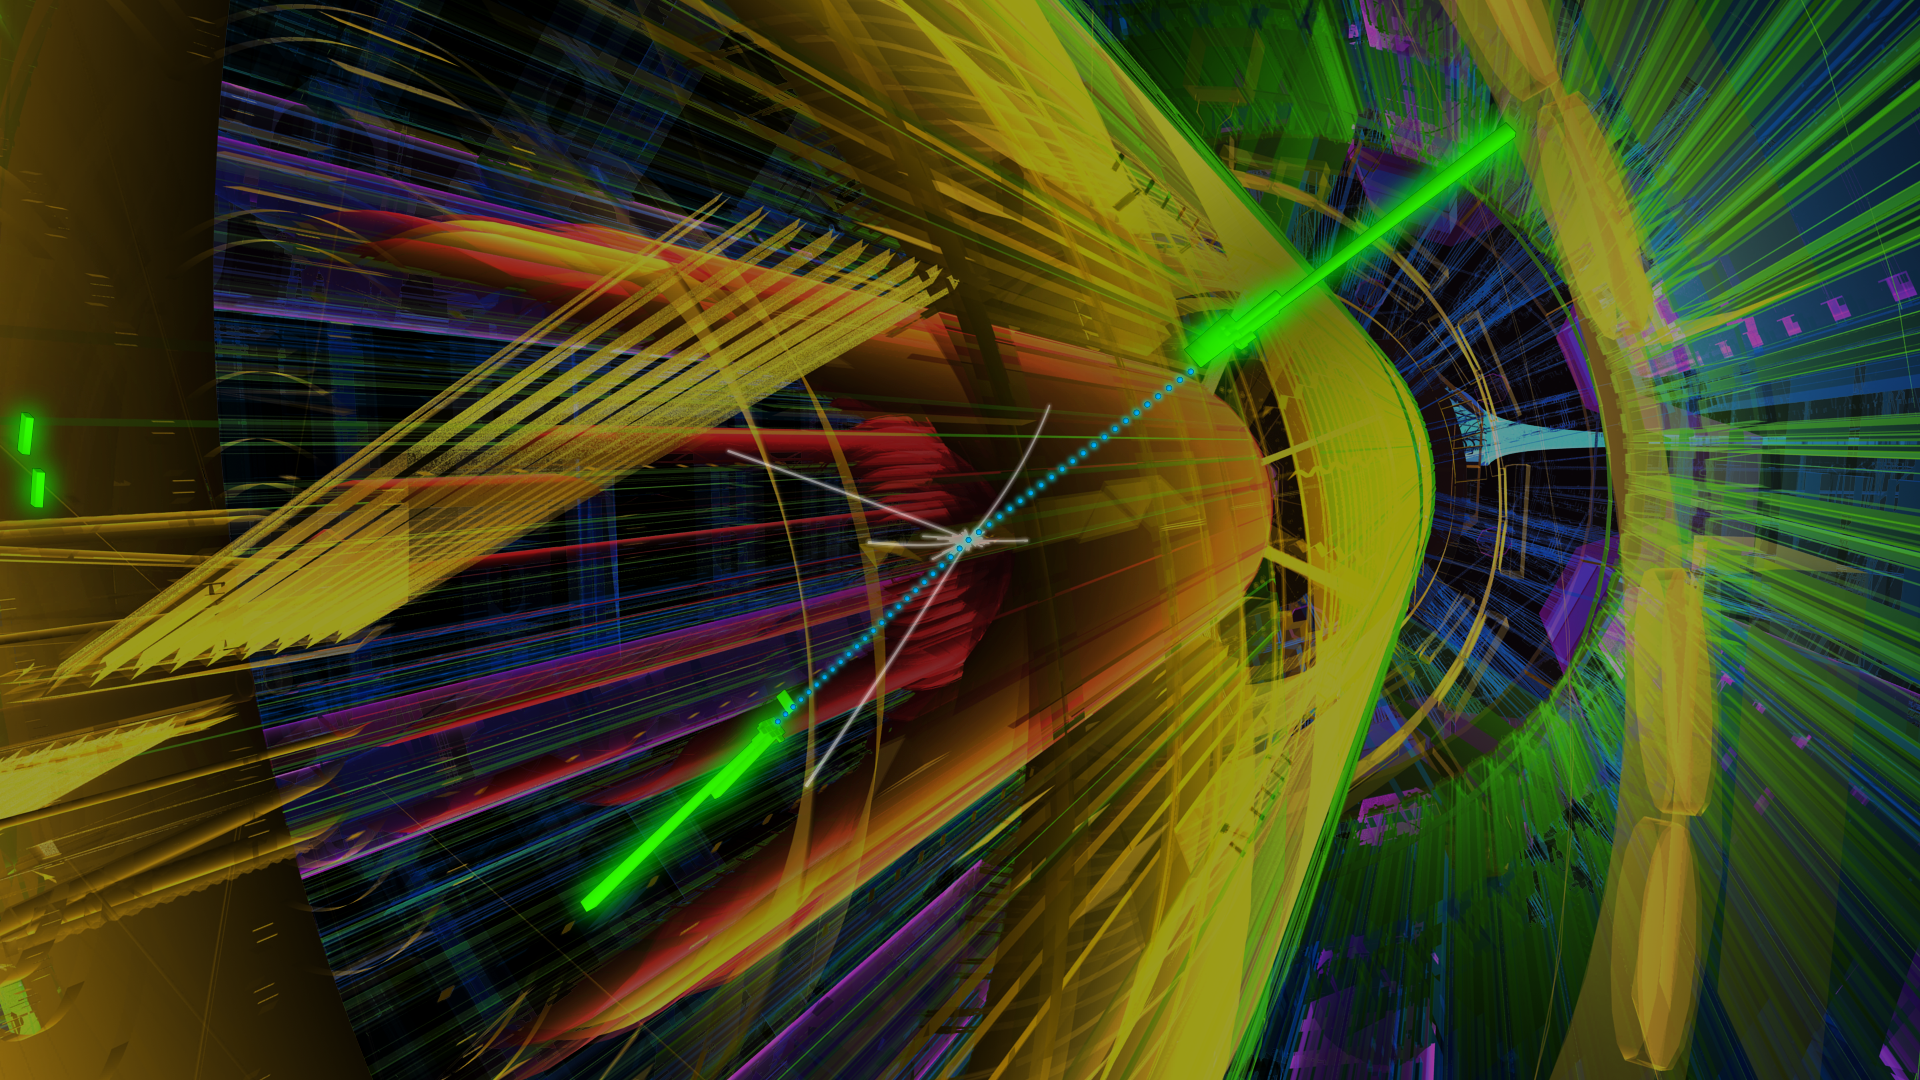 A proton-proton collision in the ATLAS detector, the bright green rods illustrate two detected photons produced in the high energy collision.  These could be the result of a Higgs boson being produced and decaying into two photons.